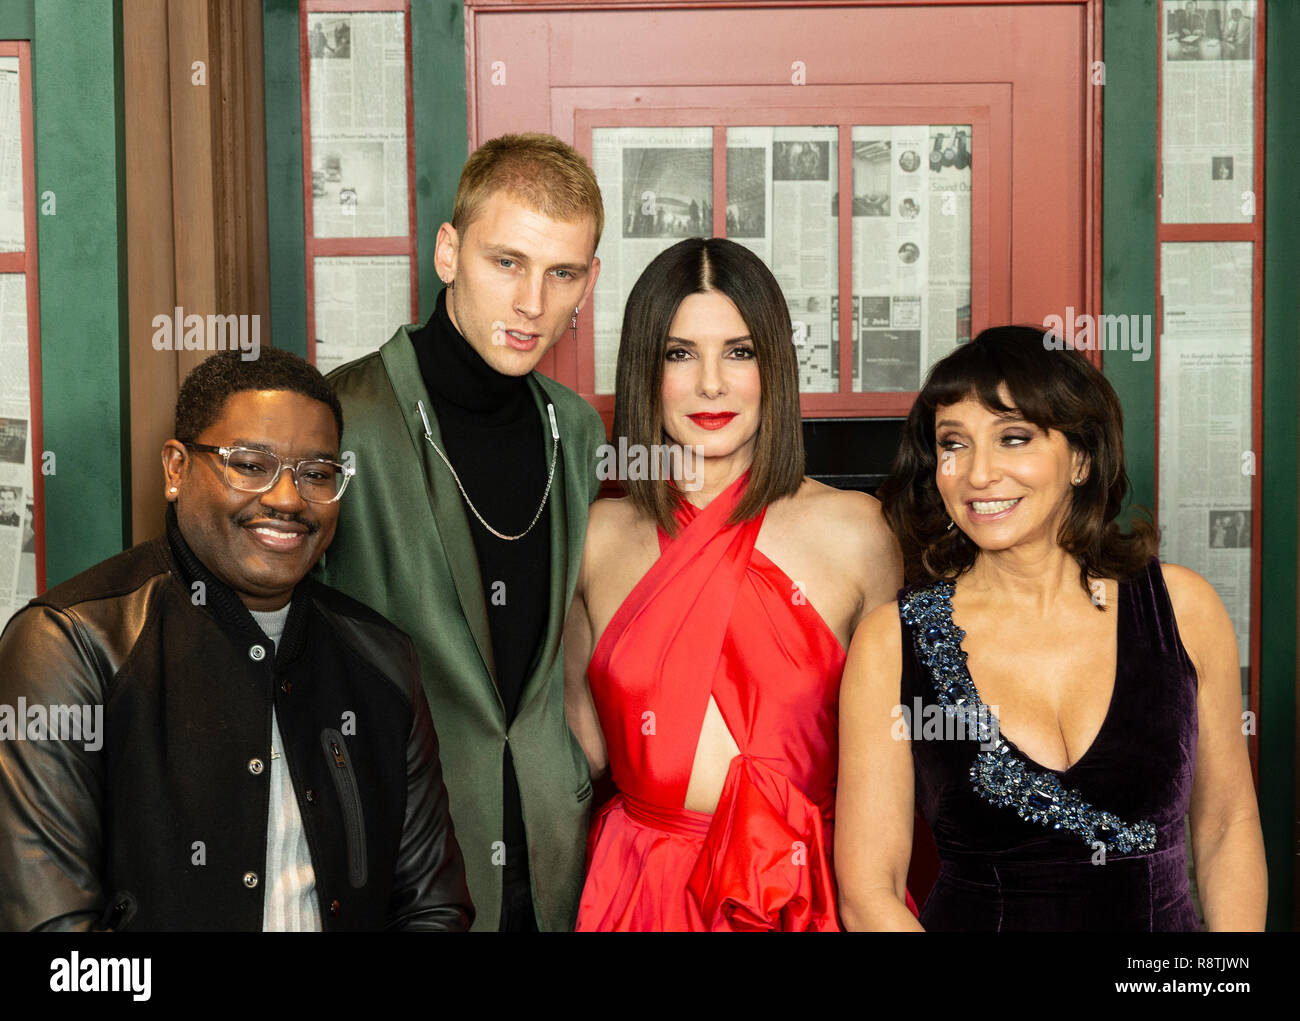 New York, United States. 17th Dec, 2018. New York, NY - December 17, 2018: Cast and crew attend the New York screening of 'Bird Box' at Alice Tully Hall Lincoln Center Credit: lev radin/Alamy Live News - Stock Image